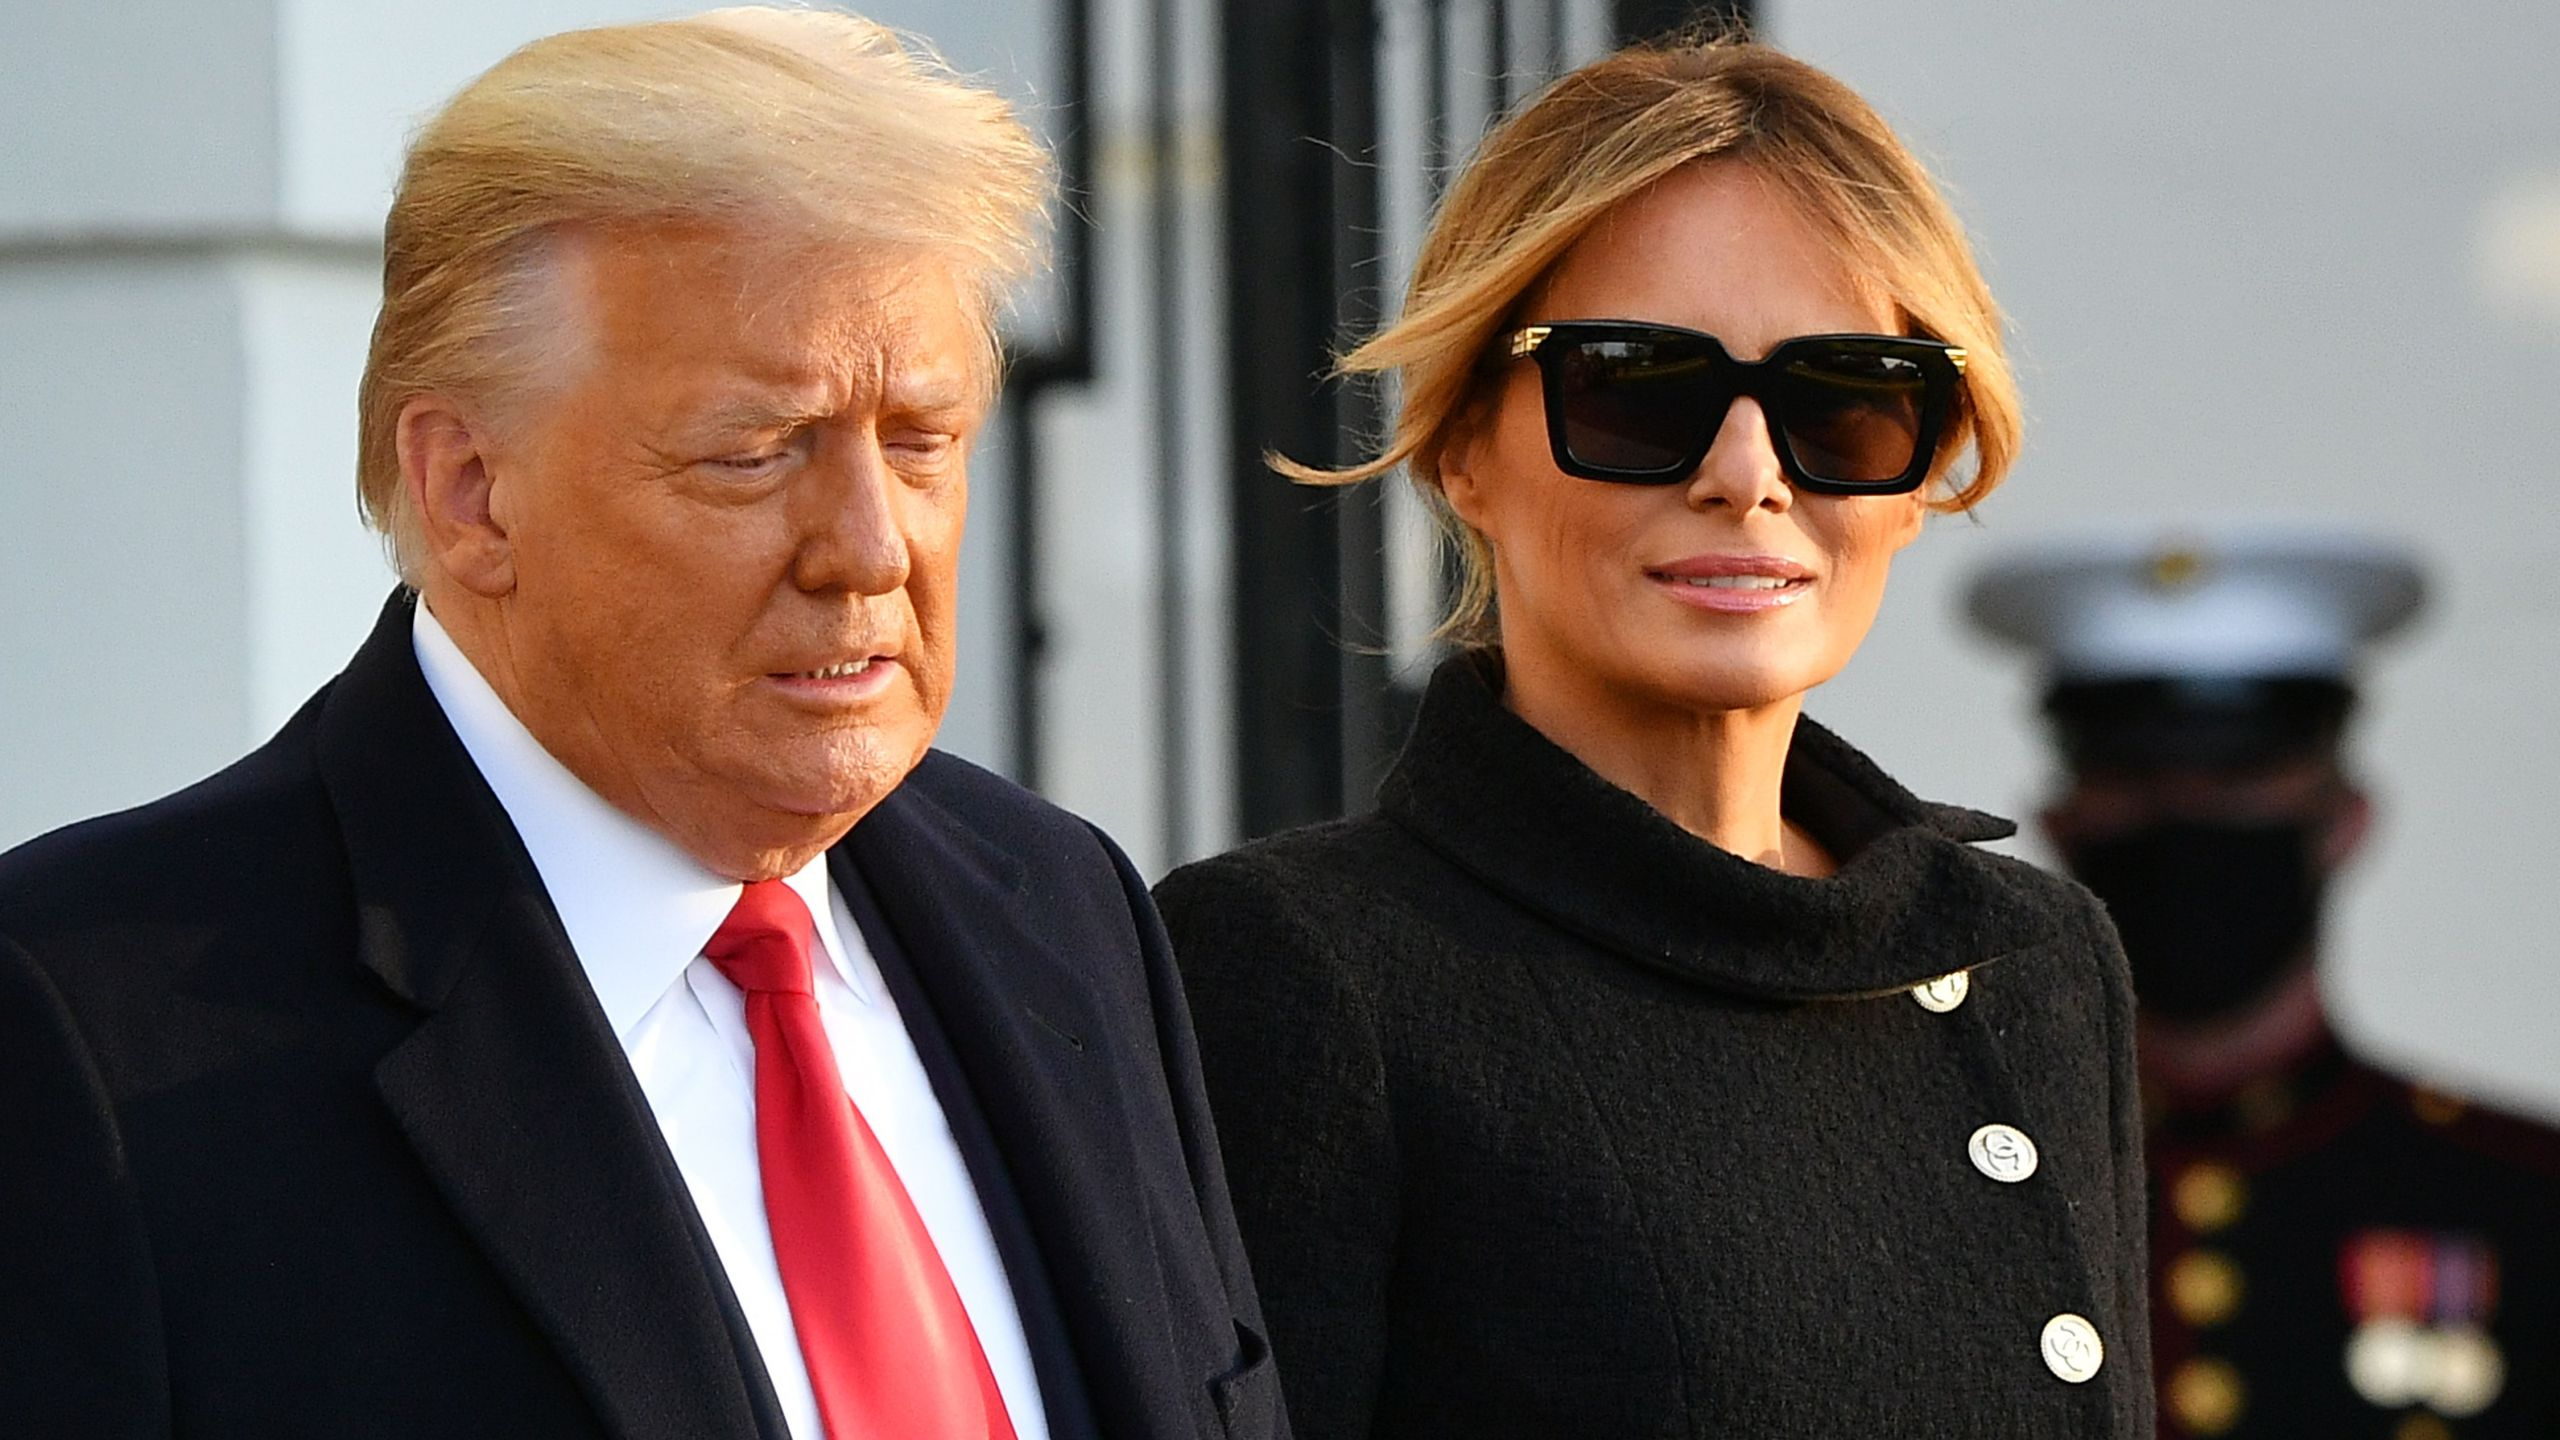 US President Donald Trump and First Lady Melania Trump make their way to board Marine One as they depart the White House in Washington, DC, on January 20, 2021. (MANDEL NGAN/AFP via Getty Images)